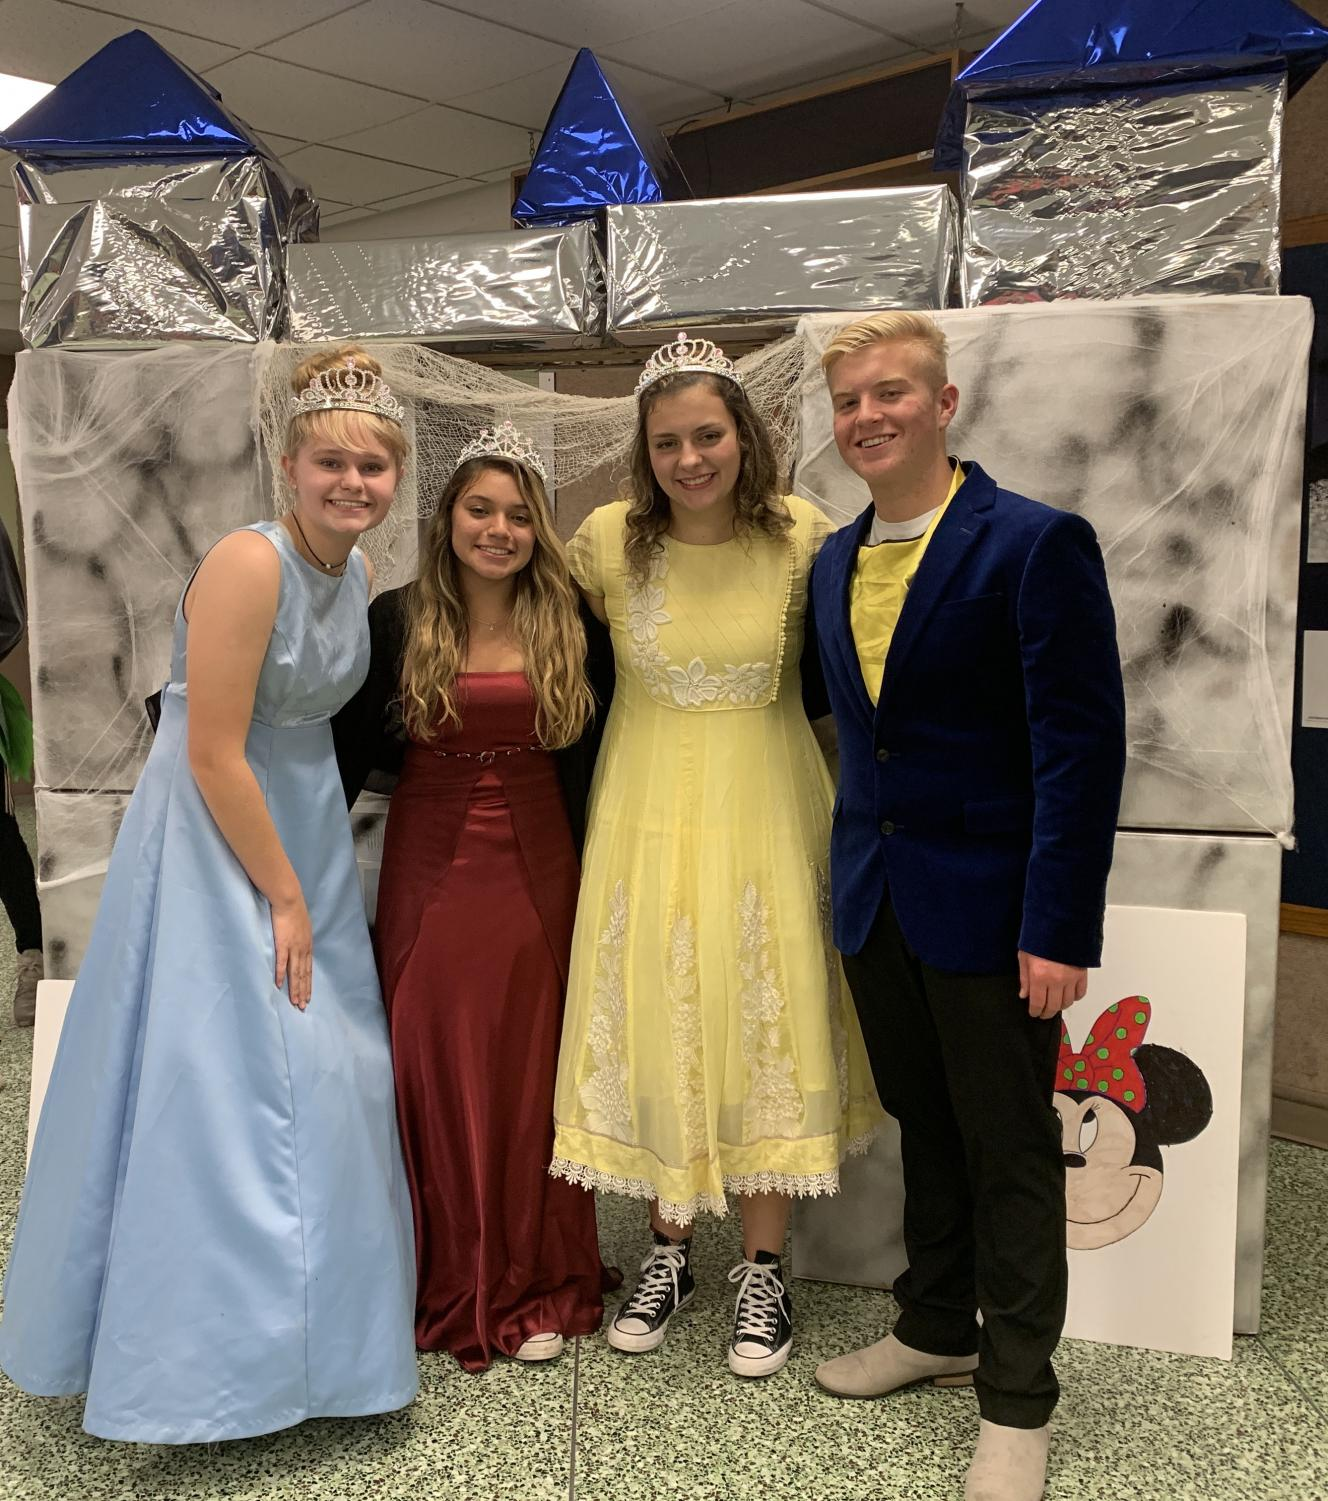 One of the many groups of students that participated in Track-or-Treat was Move2Stand.  Their theme was Disney and they even created a castle to go along with their table.